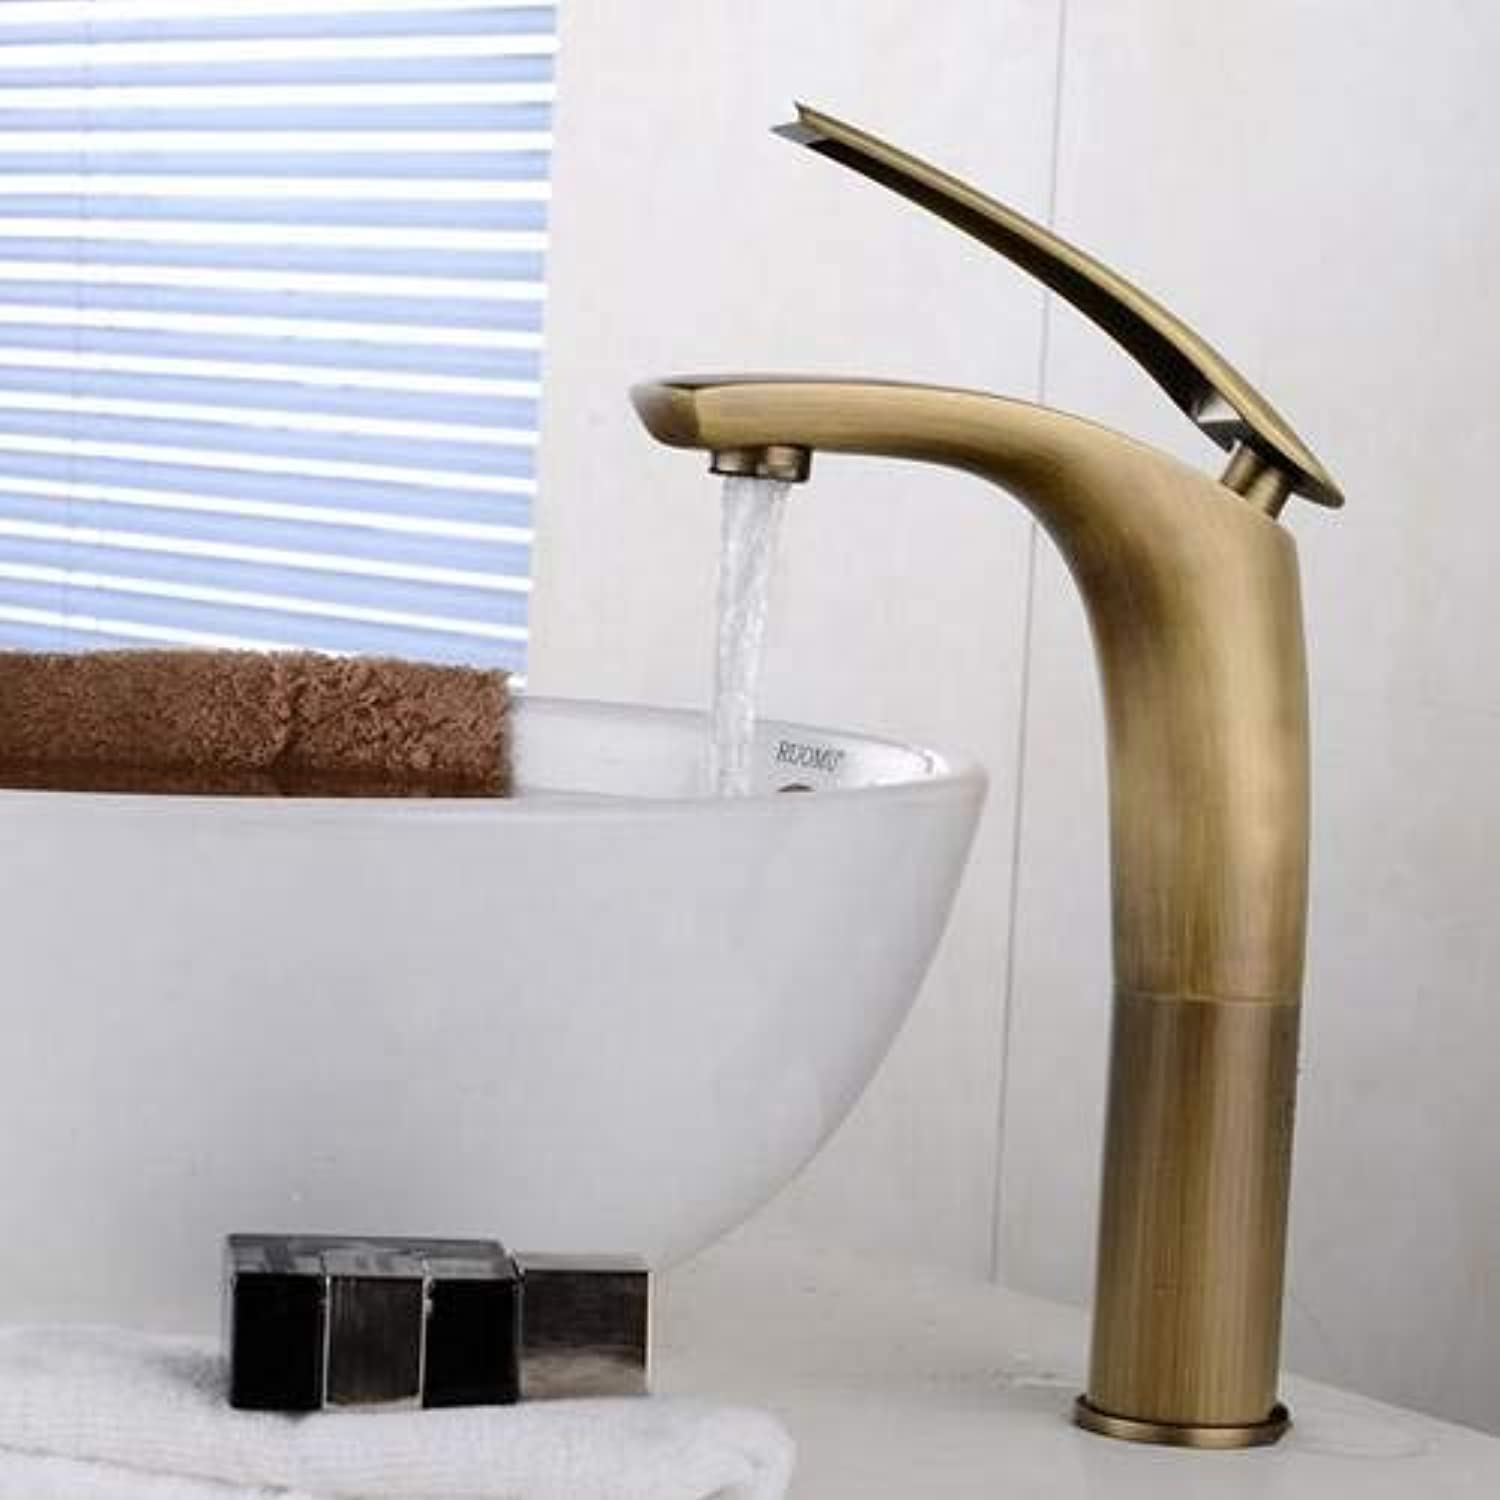 Decorry Antique Bronze Bathroom Sink Faucet Crane Mixer Tap Single Handle Vessel Sink Mixer Tall Hot and Cold Tap,Tall Faucet